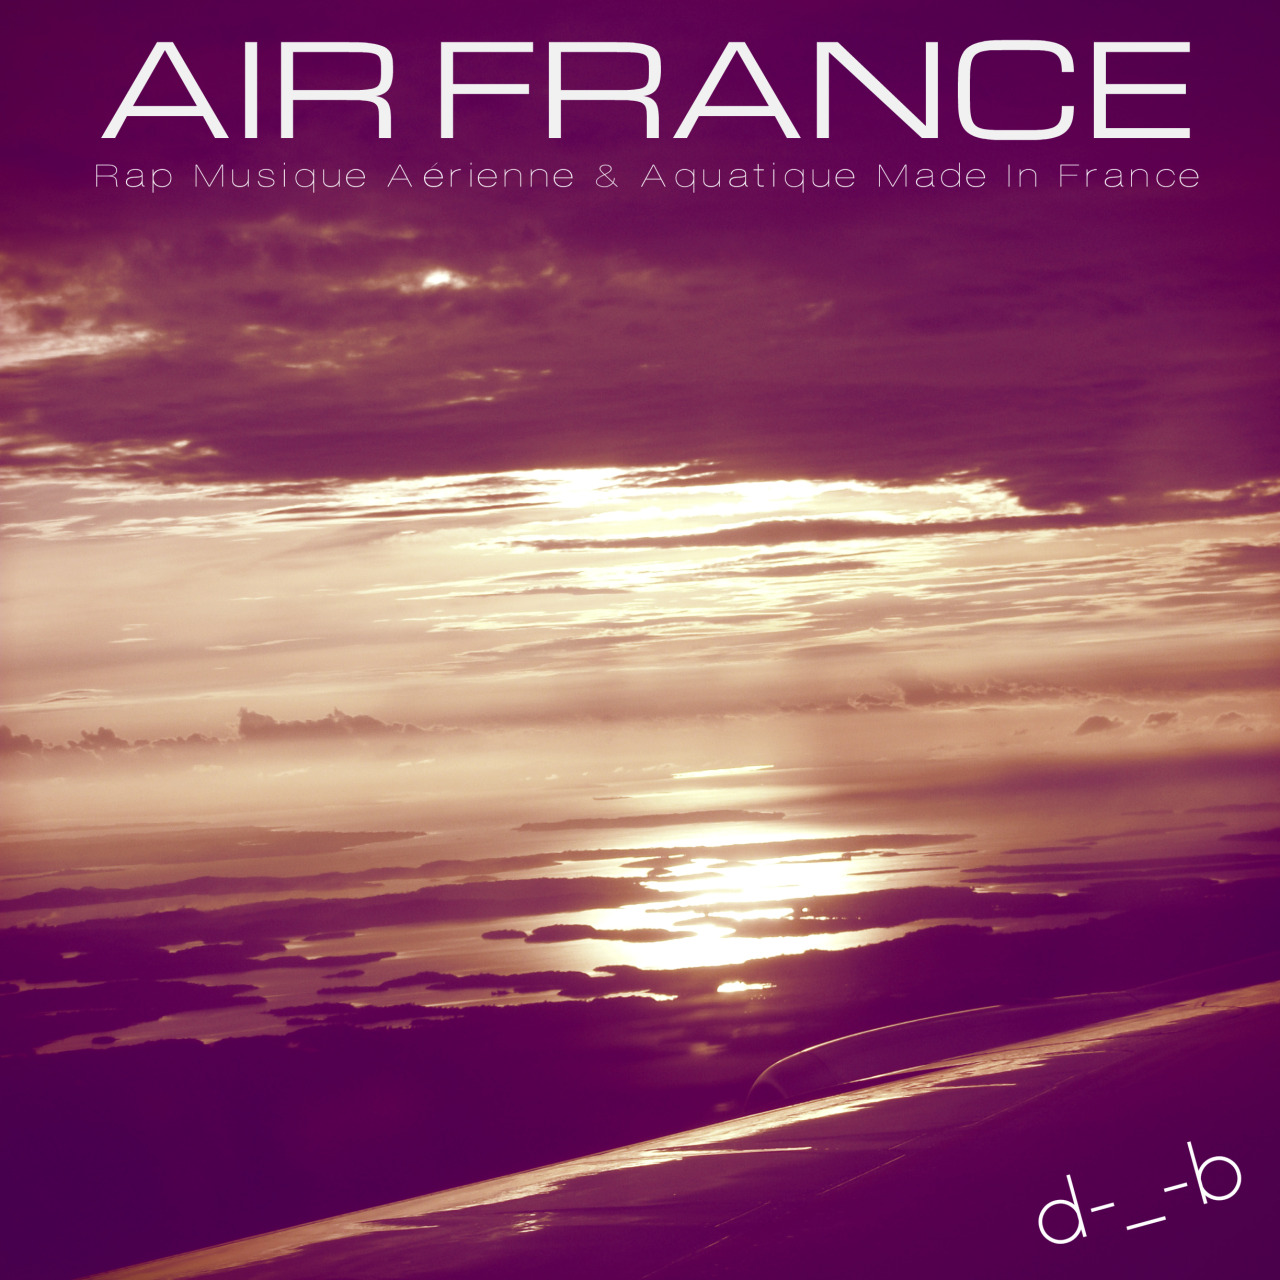 Voici une sélection rap musique, aérienne & aquatique, made in France, à découvrir en 12 clips sur youtube. Fly french rap selection to listen to on youtube.